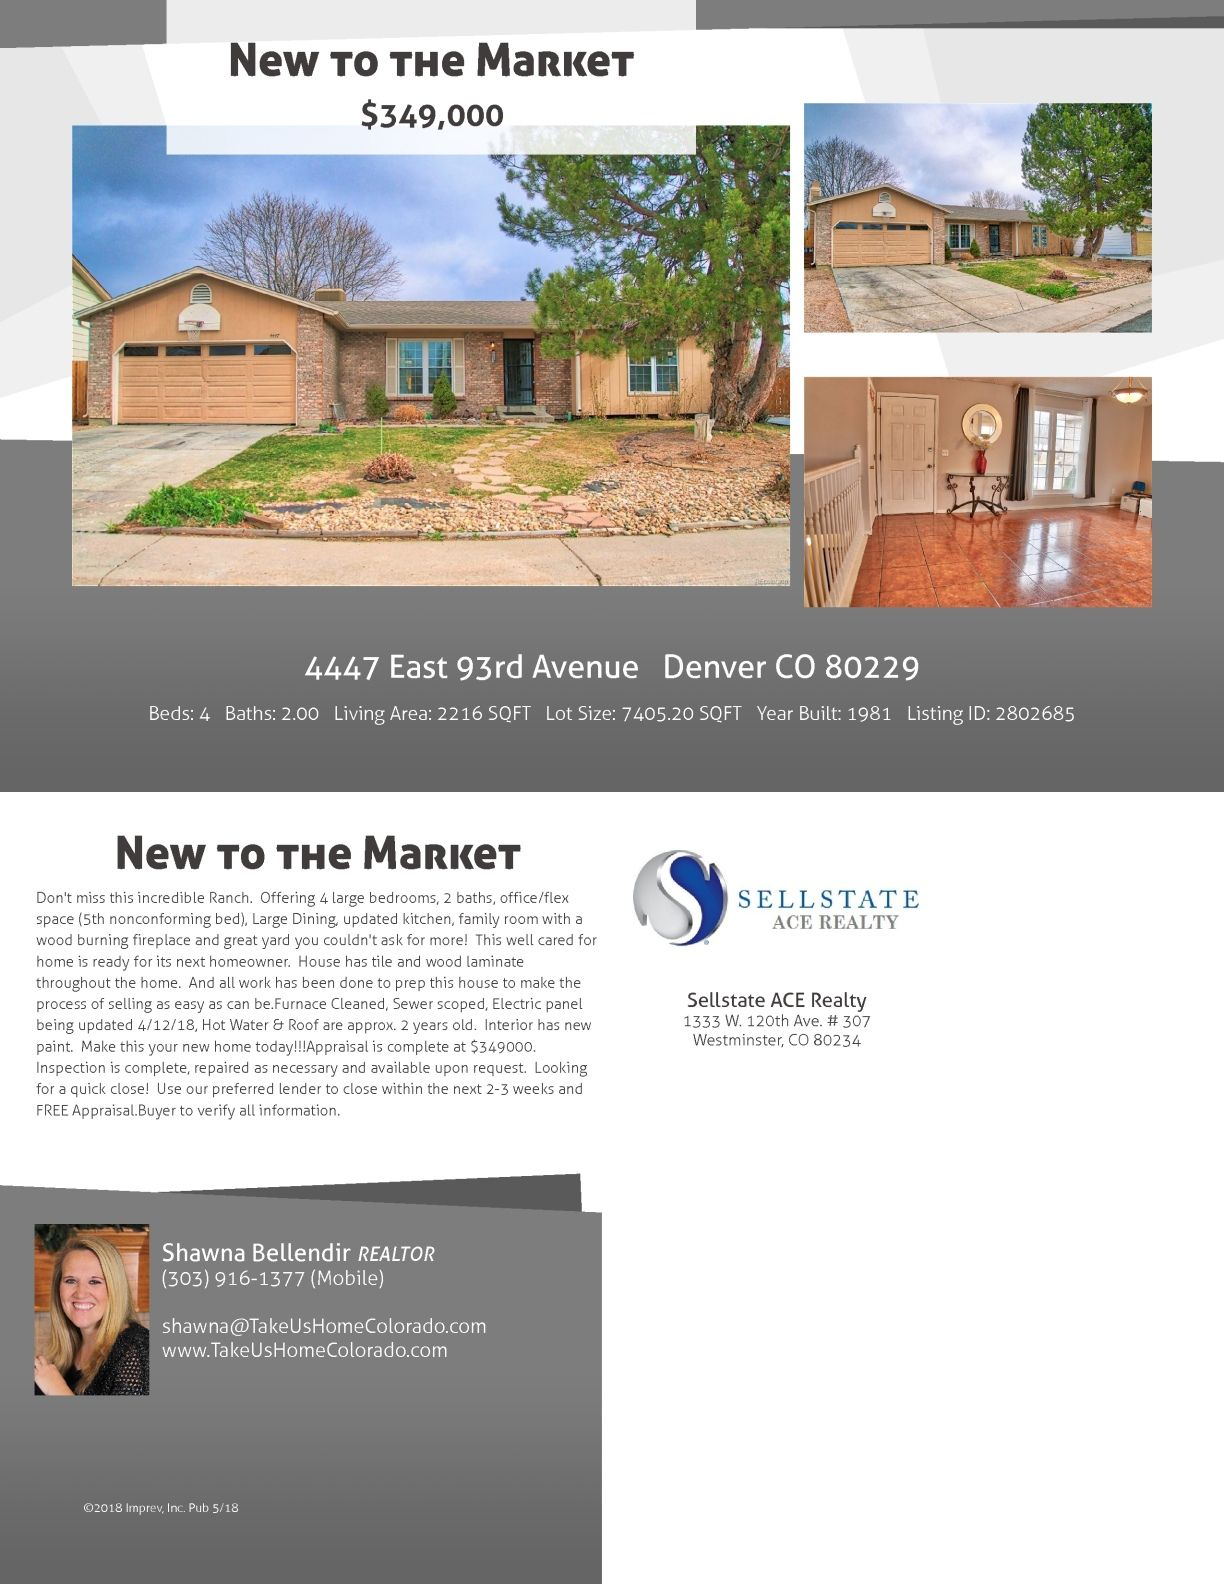 This House Is On The Market And Is Beautiful Colorado Homes Realty Real Estate Agent